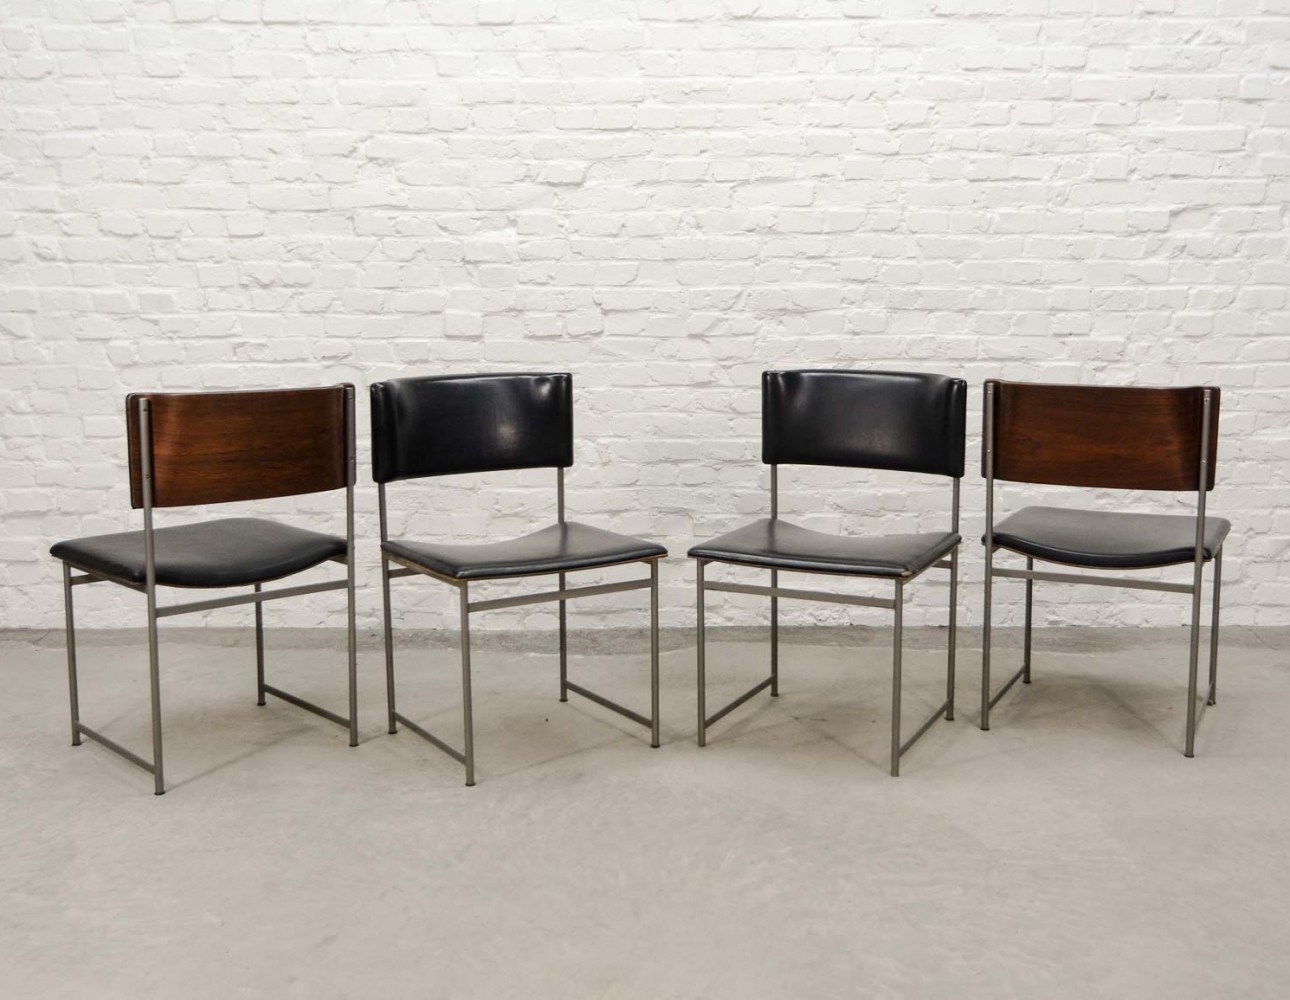 Rosewood & Leatherette Dining Chairs by Cees Braakman for Pastoe, 1960s